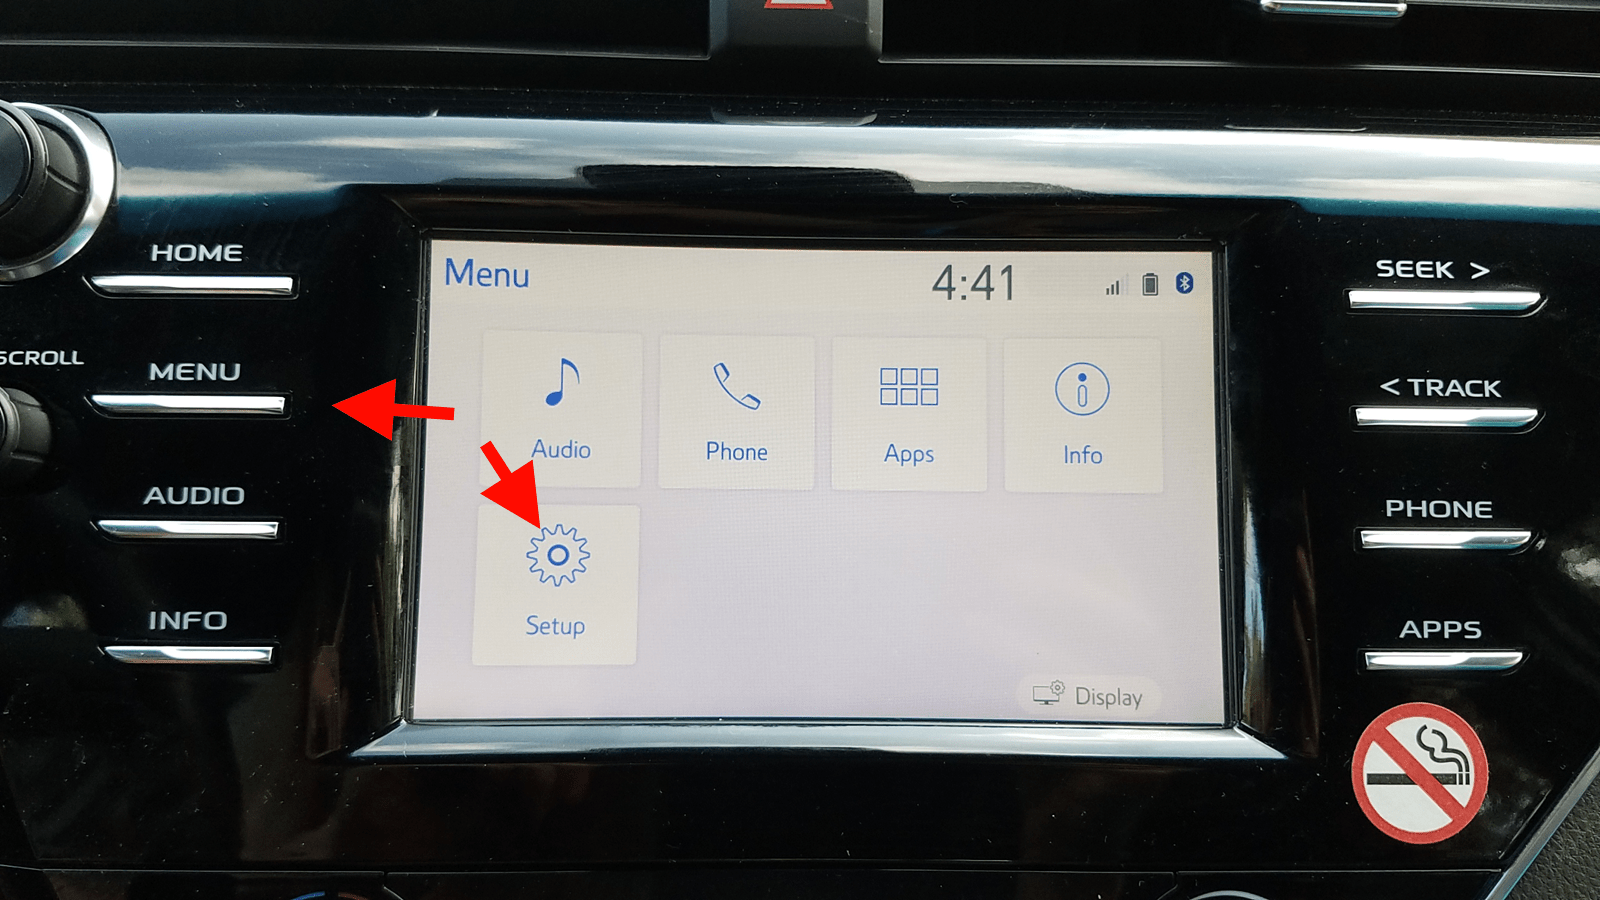 How to Delete Phone Contacts from Rental Car Bluetooth